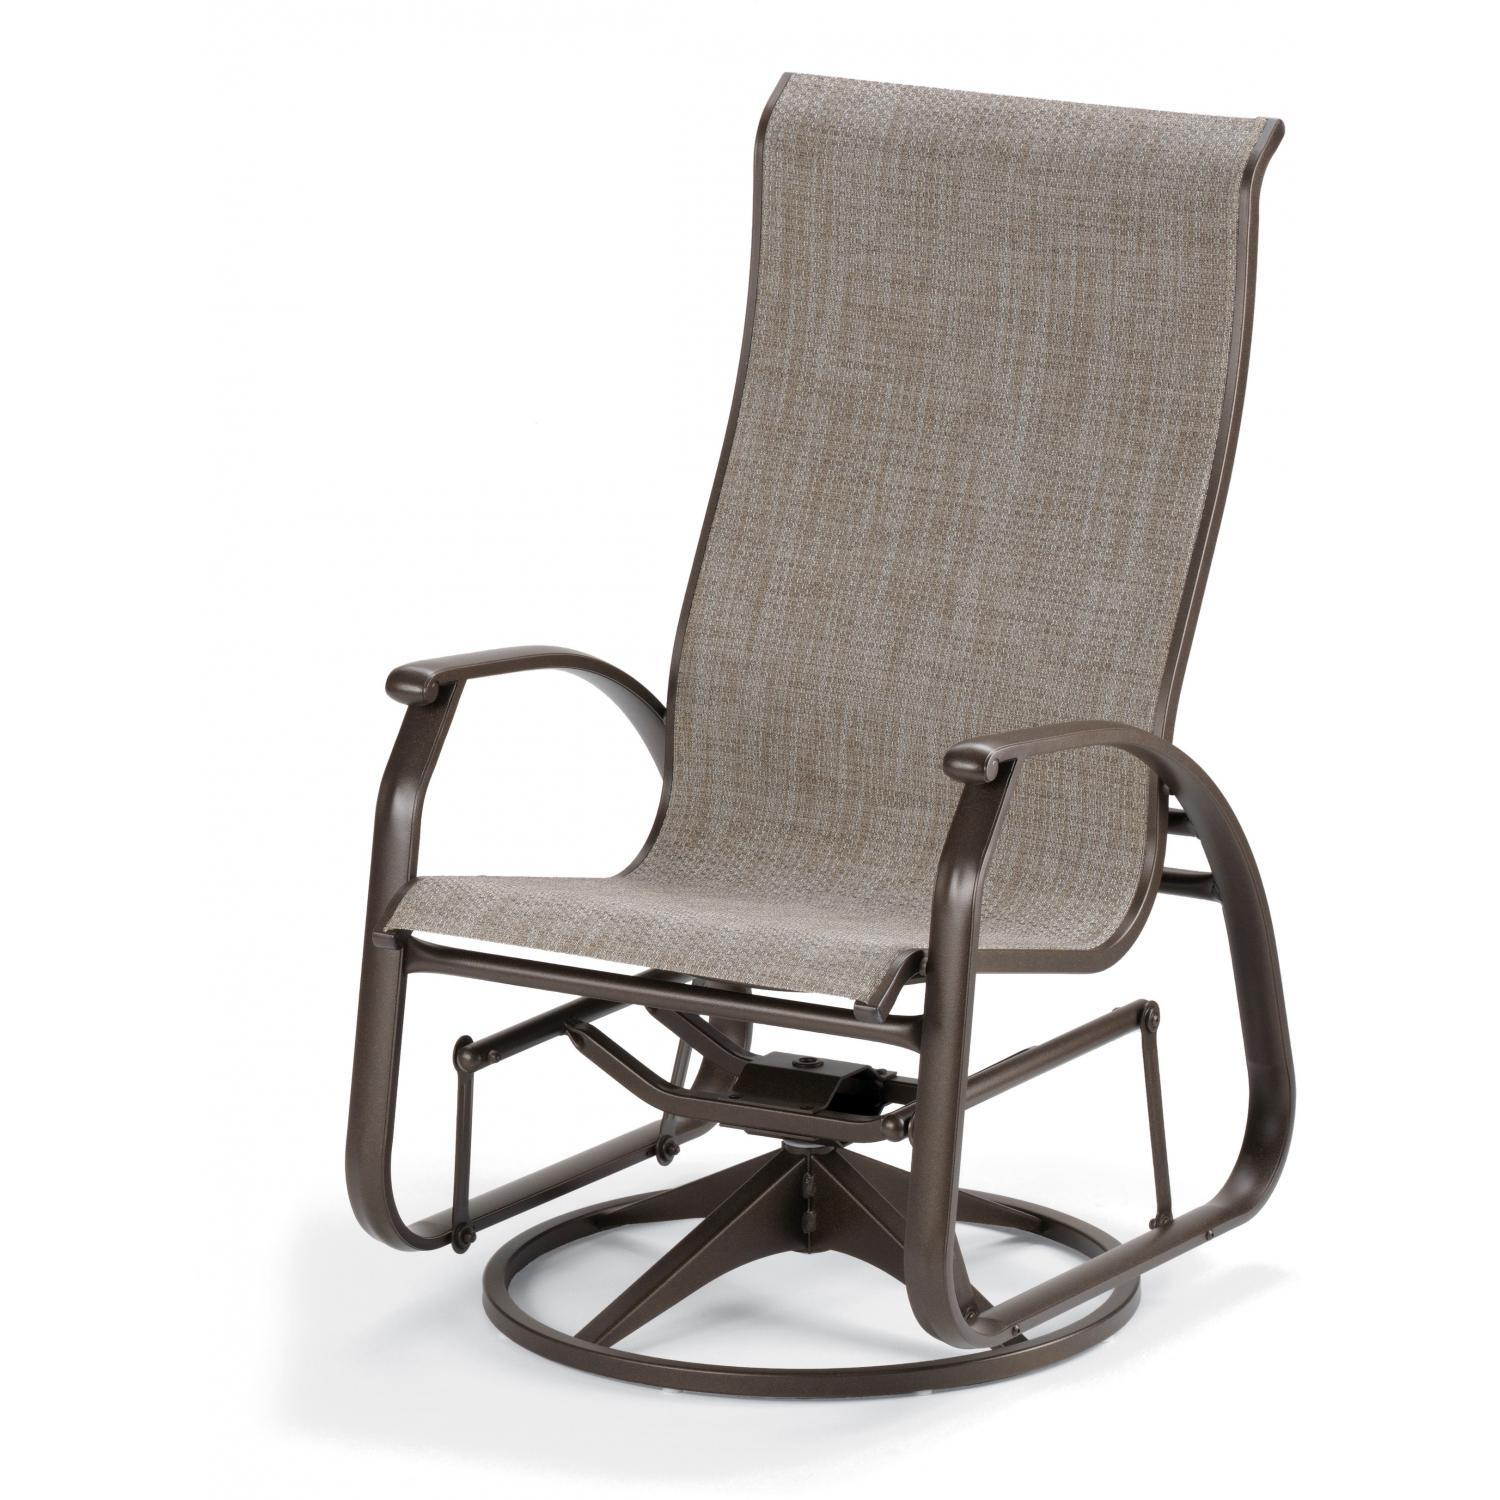 Awesome Telescope Casual Cape May Sling Supreme Swivel Glider swivel glider patio chairs